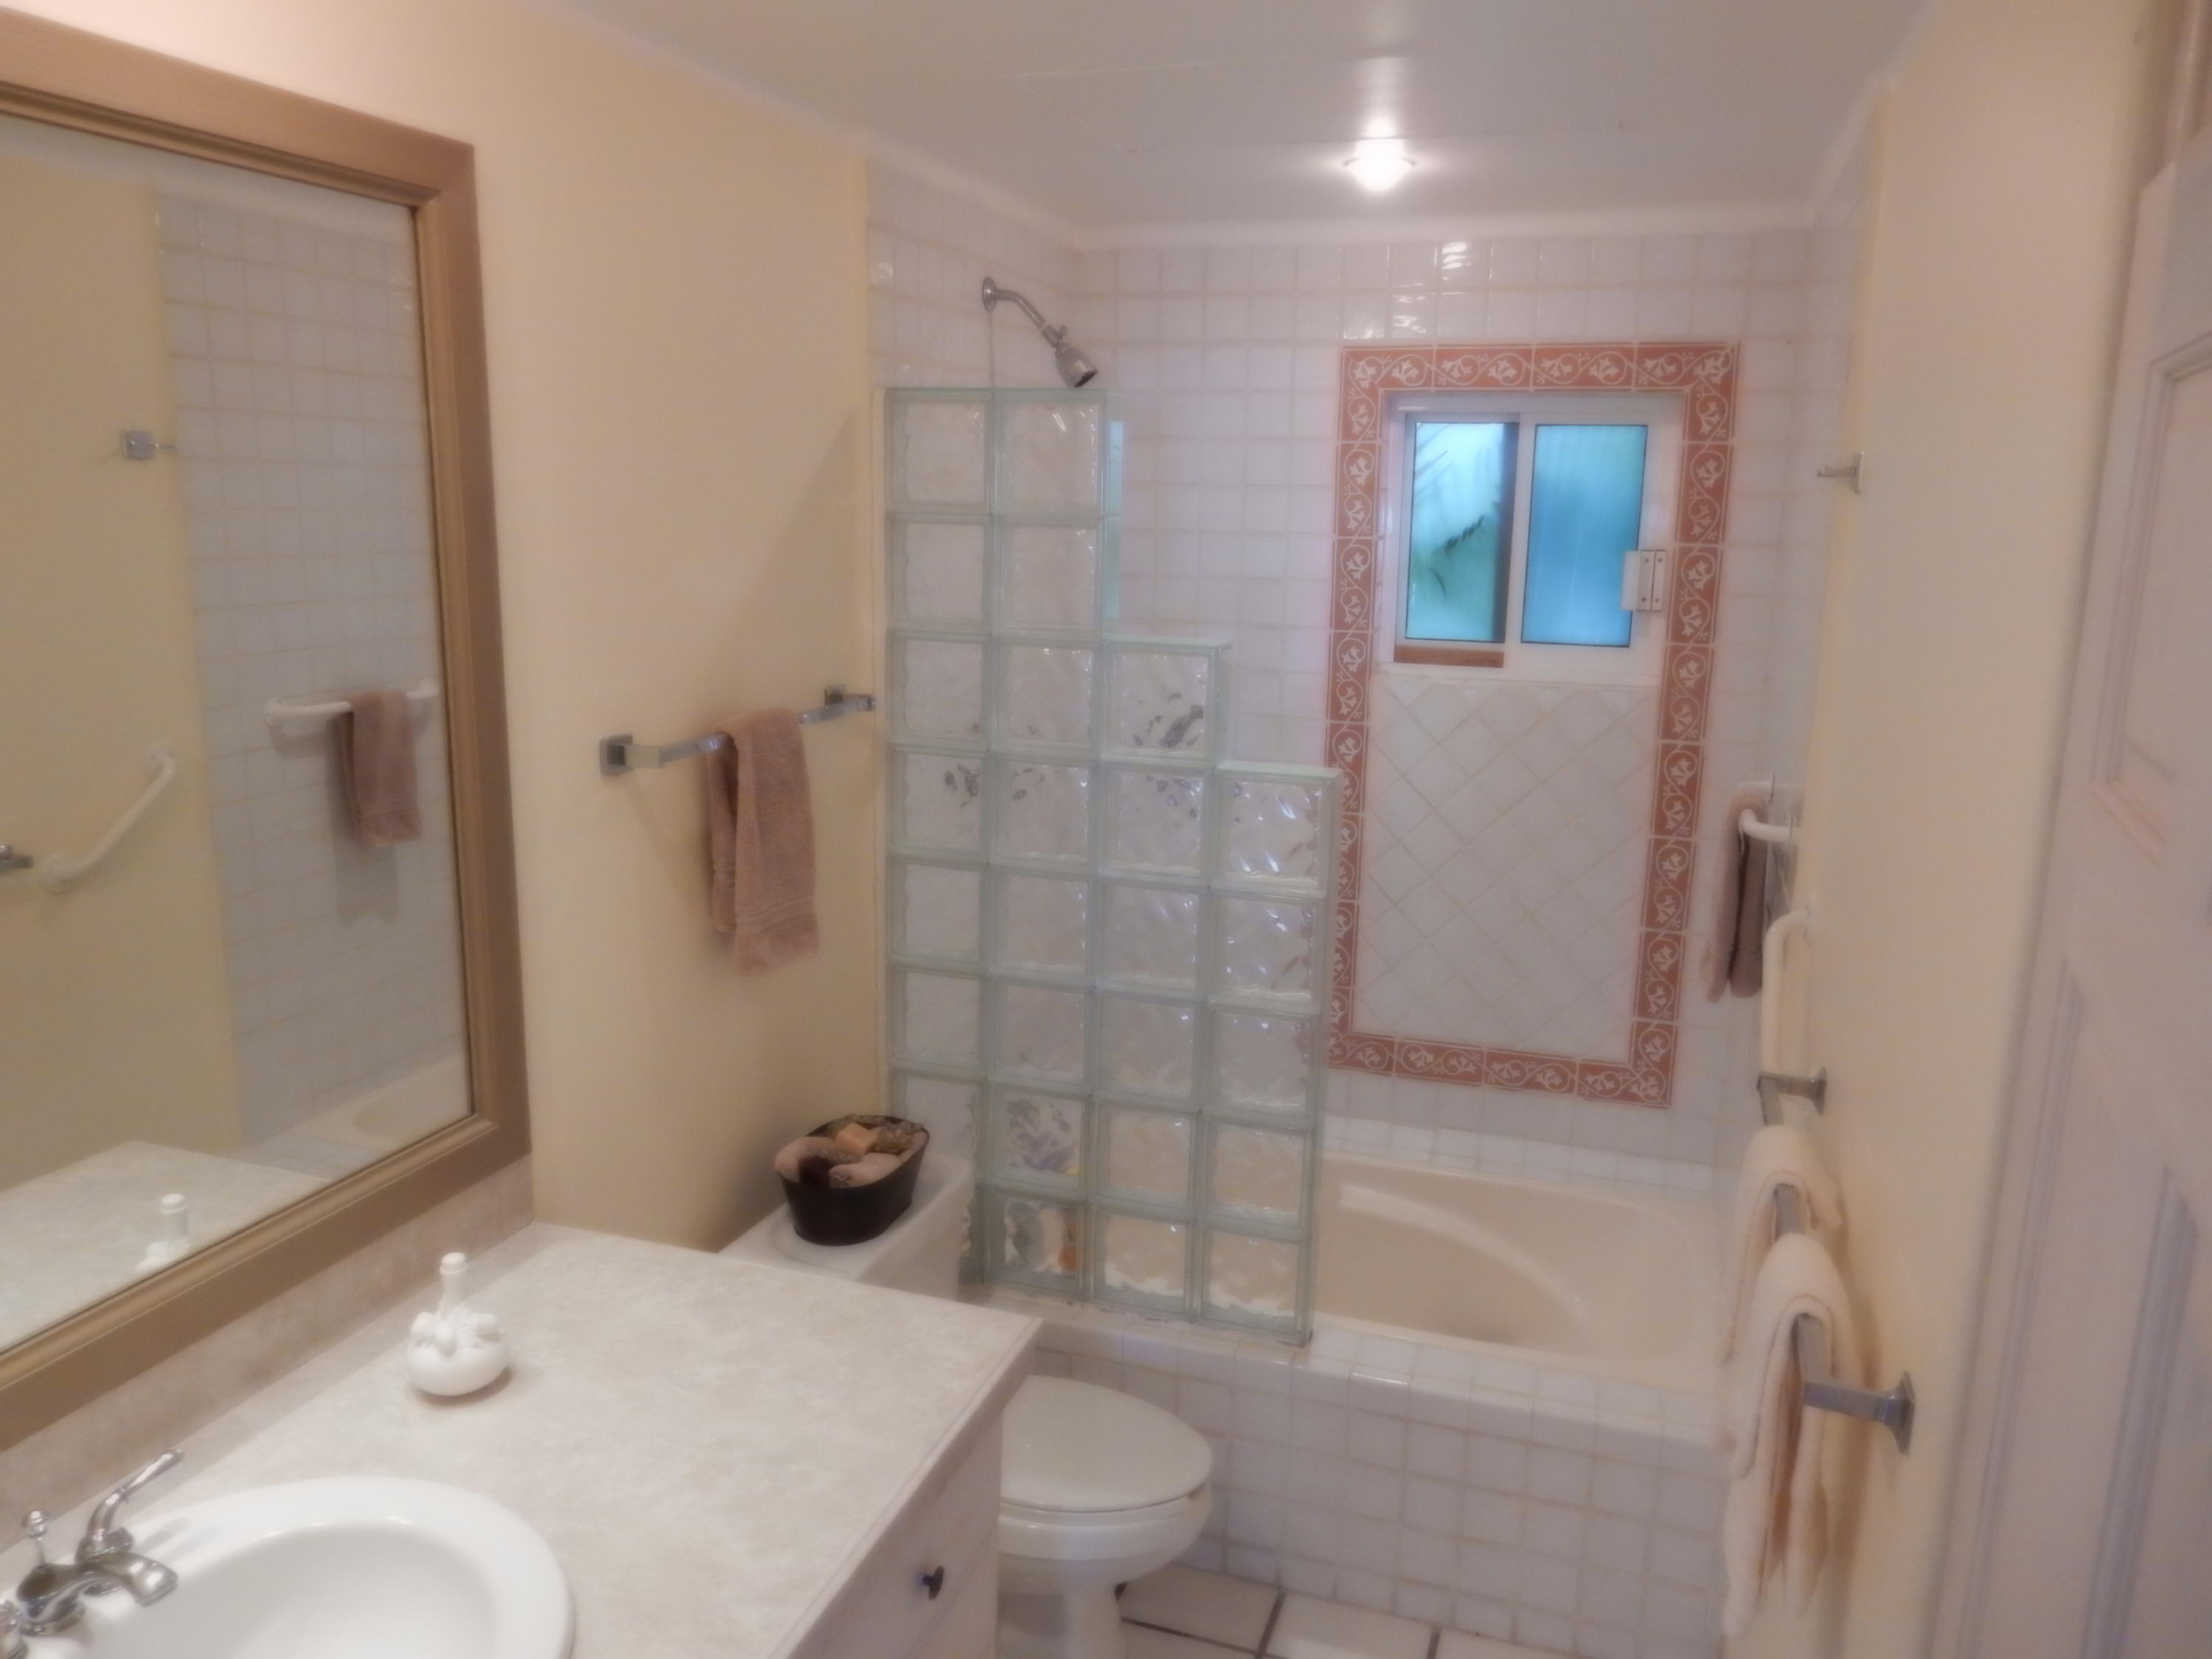 San Jose del Cabo, 2 Bedrooms Bedrooms, 5 Rooms Rooms,2 BathroomsBathrooms,Condo,For Sale,Los Frailes,19-3266